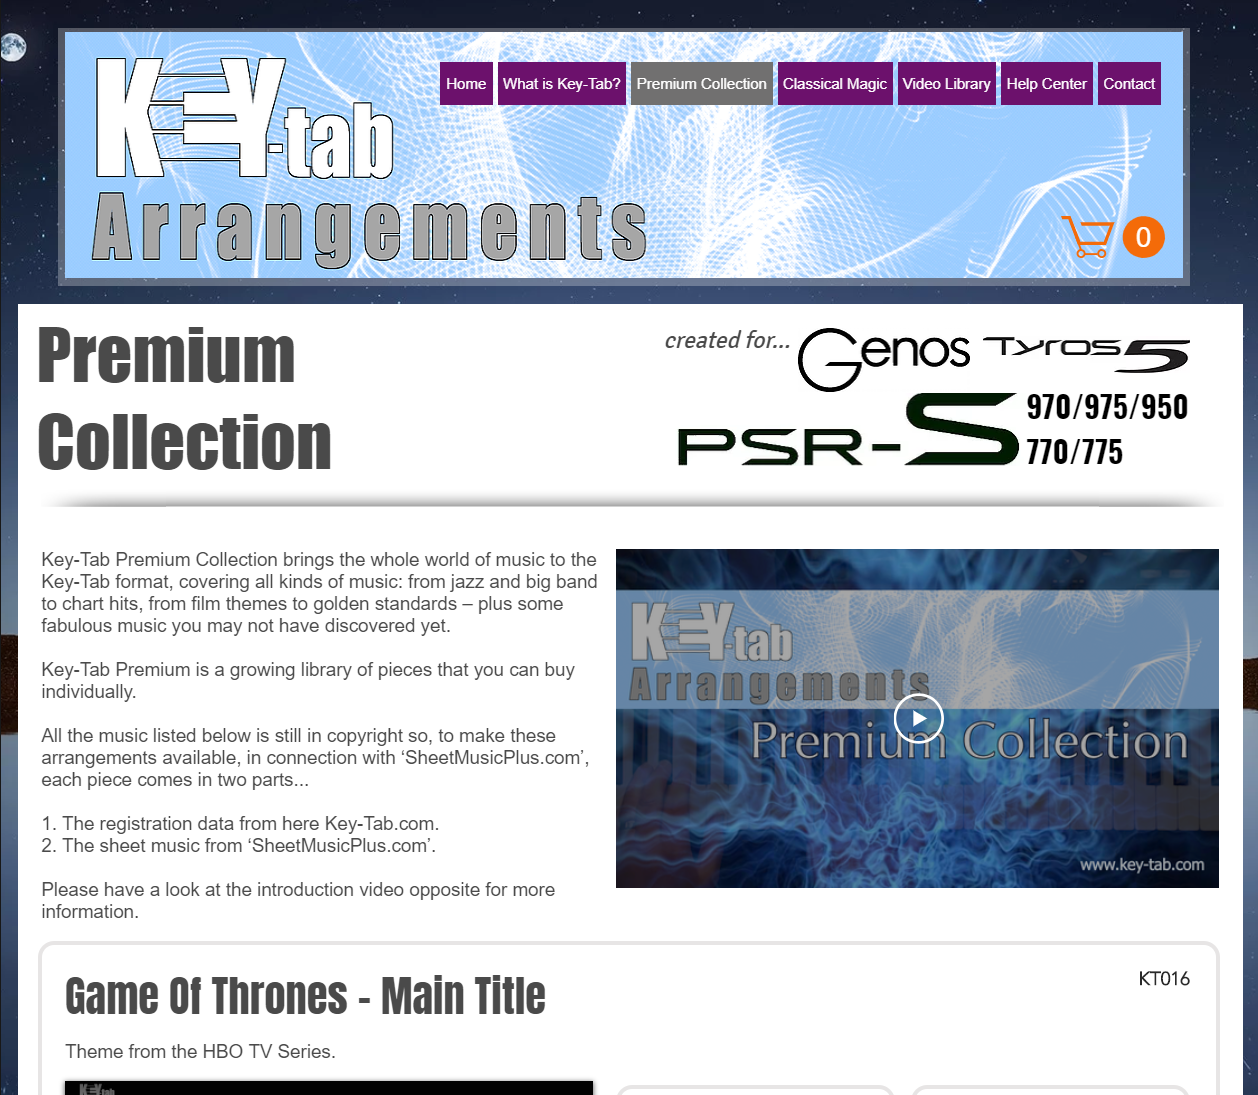 Key-Tab Arrangements for Yamaha Tyros 5, Genos and PSR-S Series